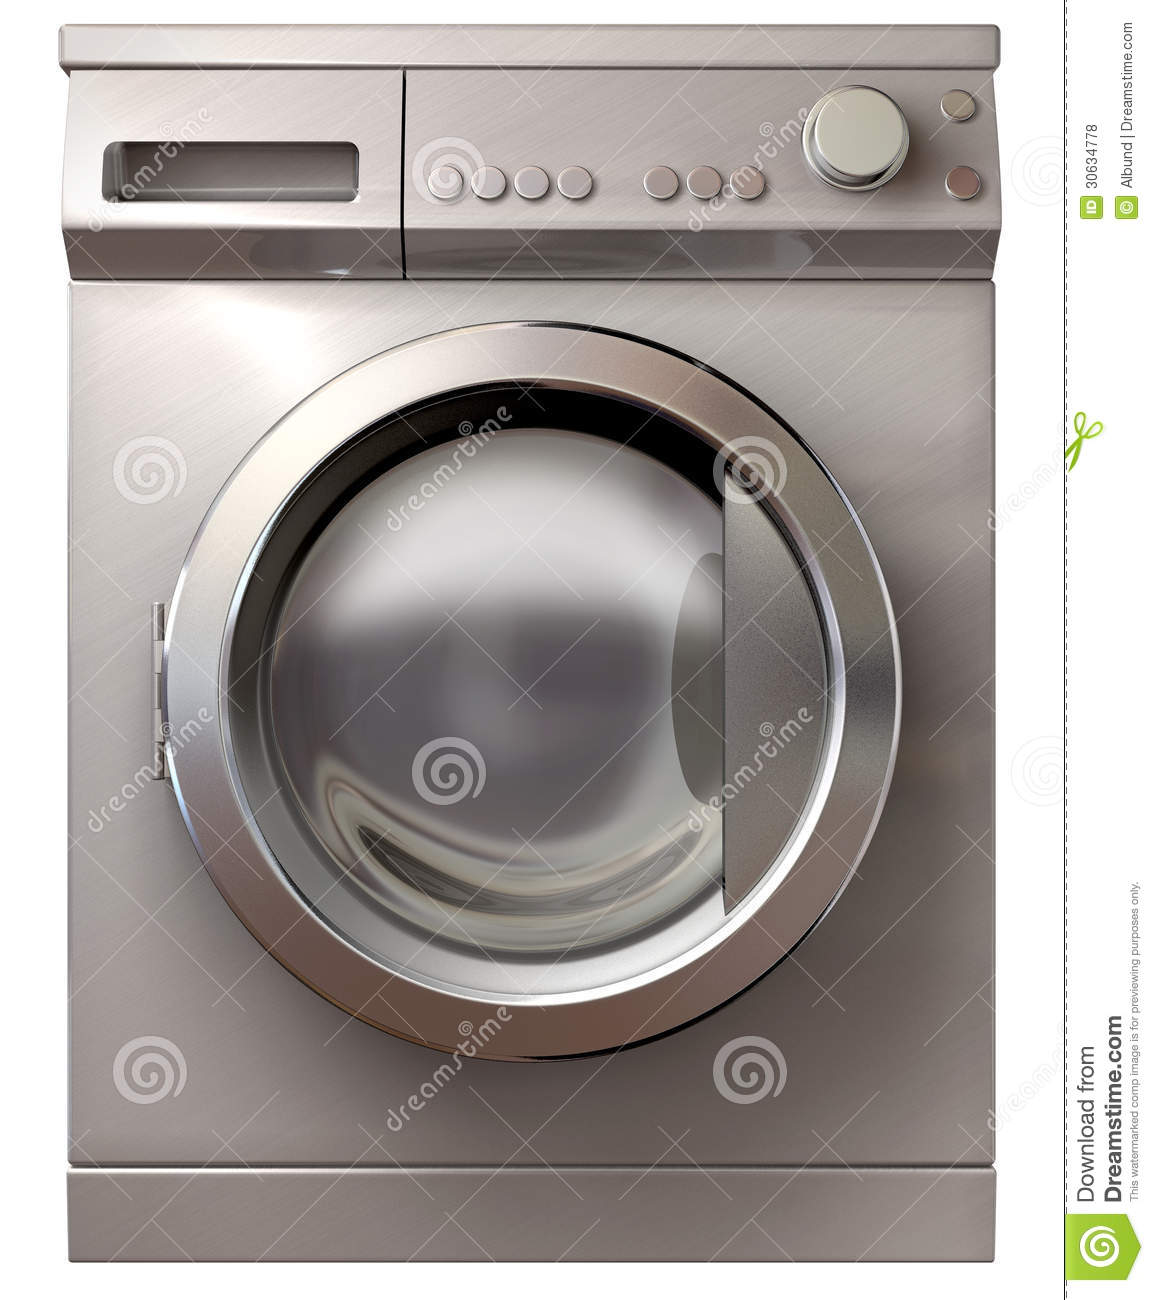 Washing Machine Front View Royalty Free Stock Photos